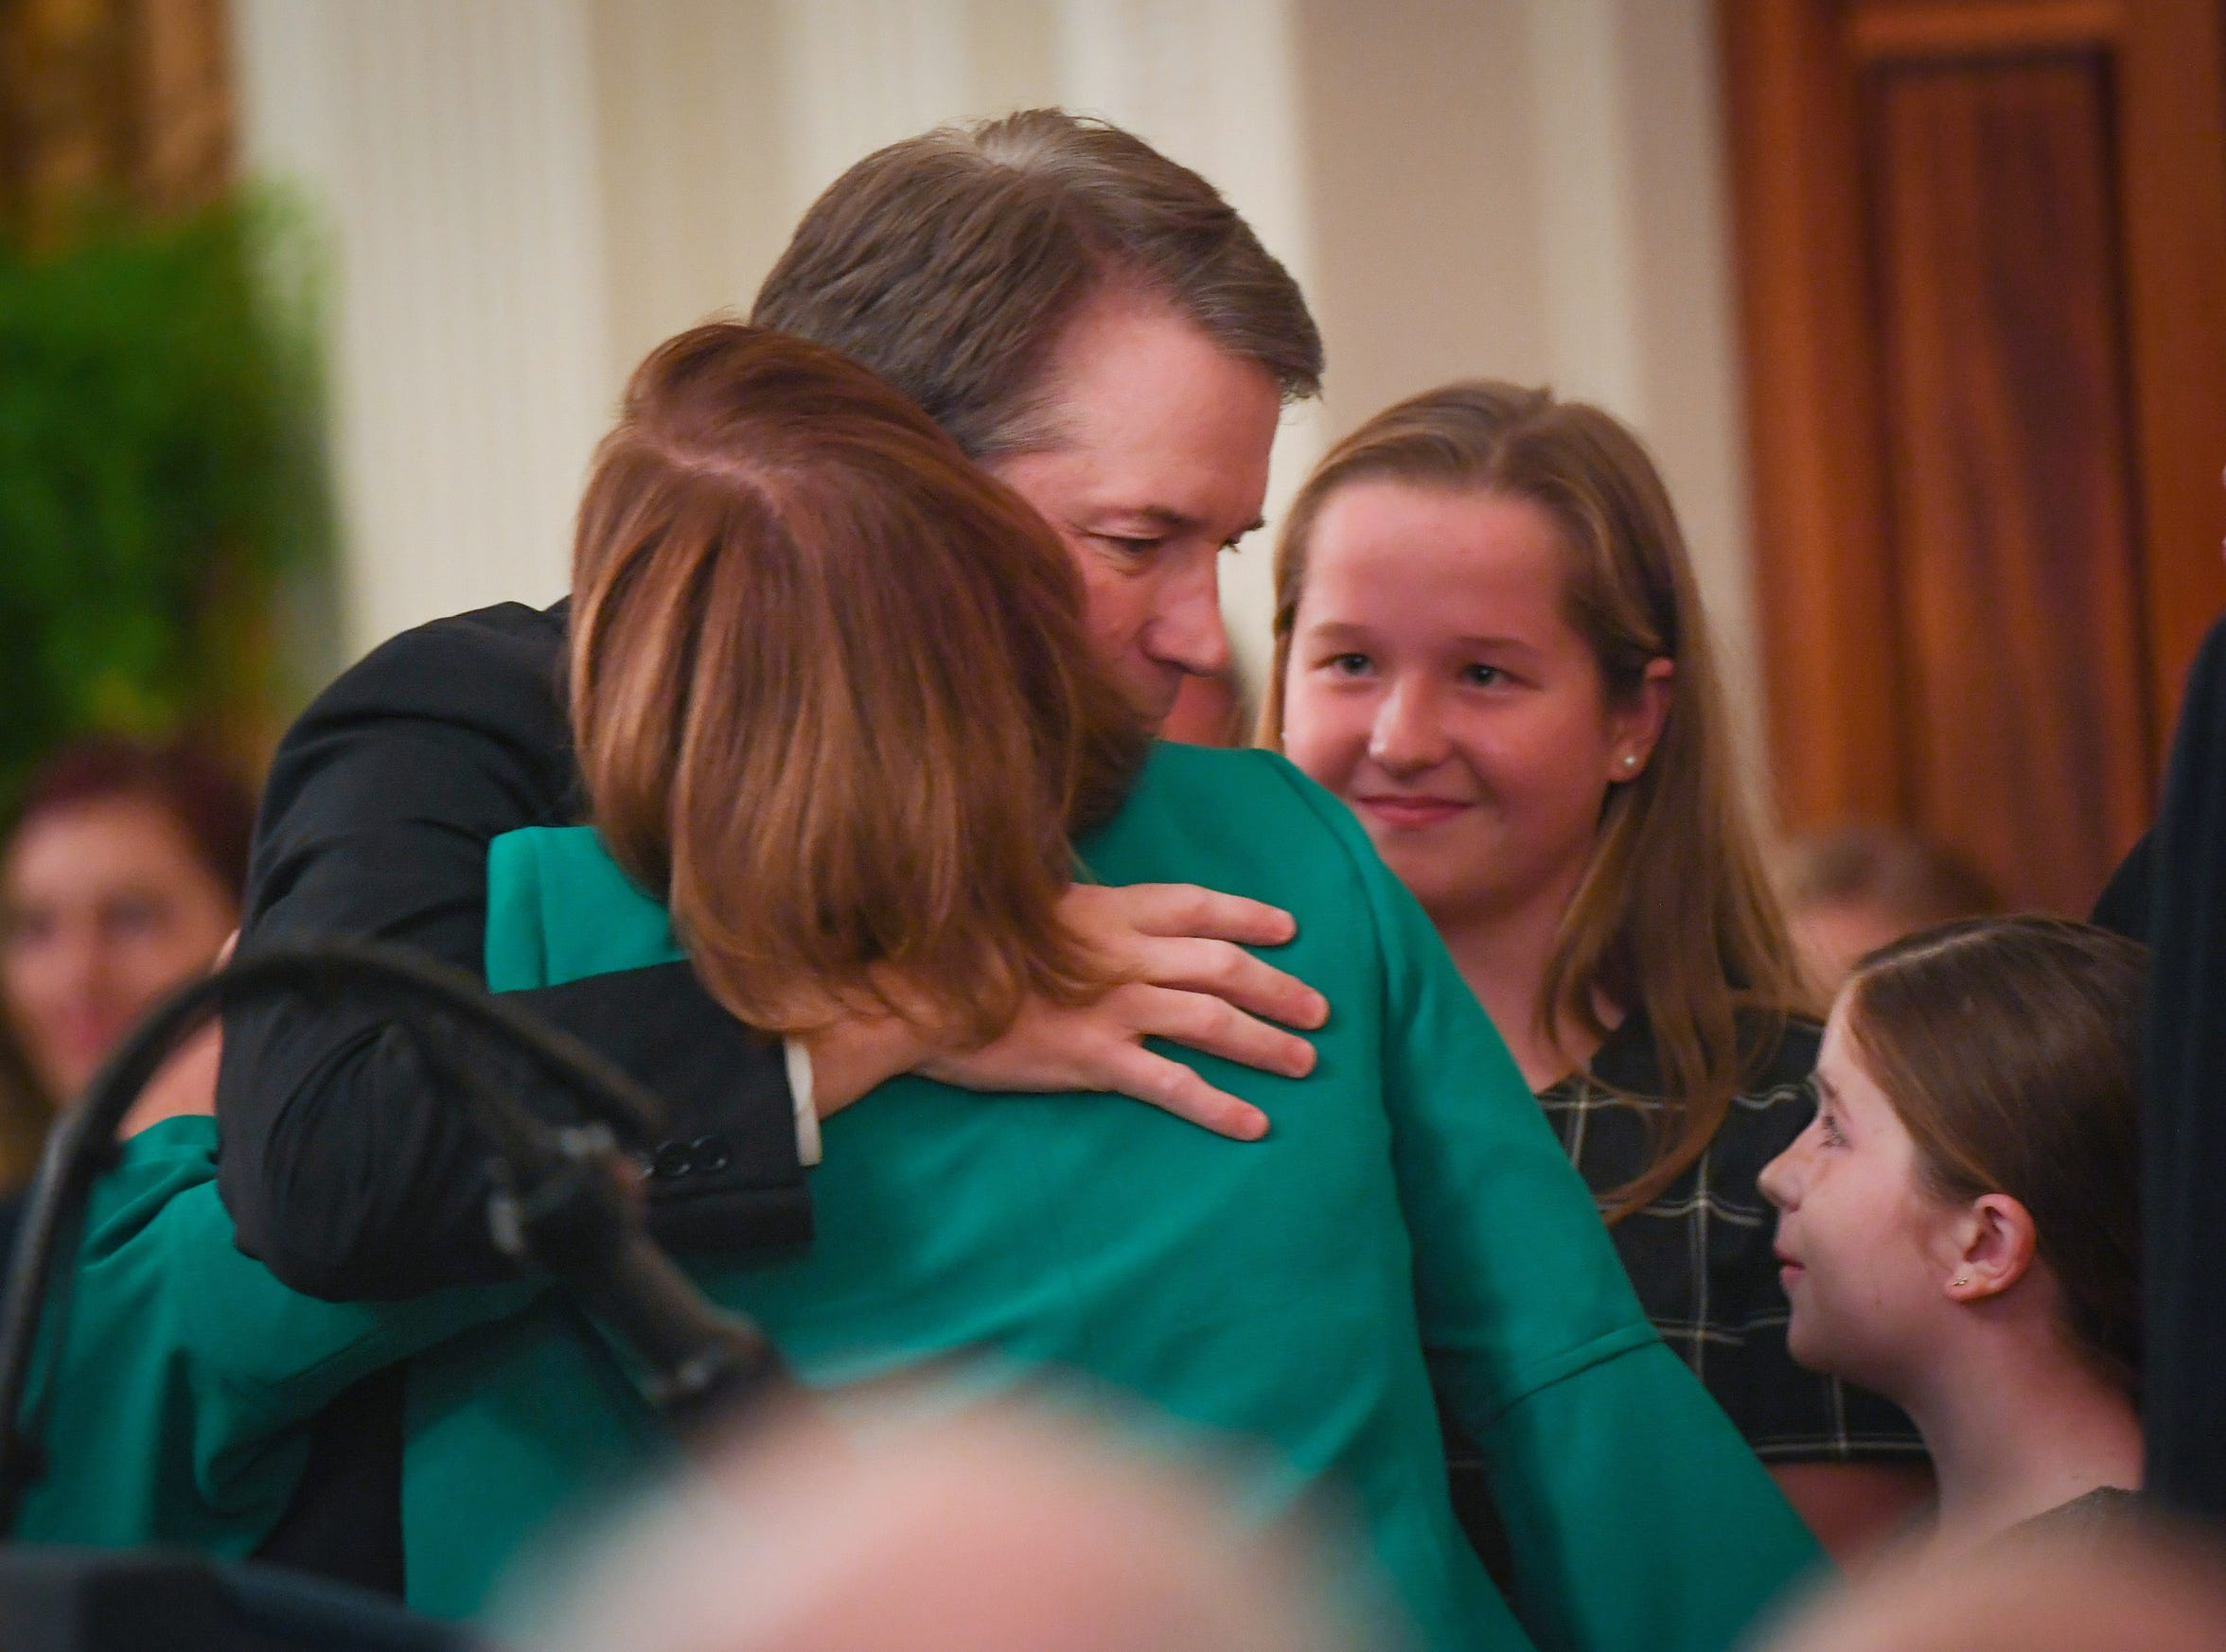 Justice Brett Kavanaugh hugs his wife Ashley Kavanaugh alongside their daughters Liza Kavanaugh and Margaret Kavanaugh during the ceremony.